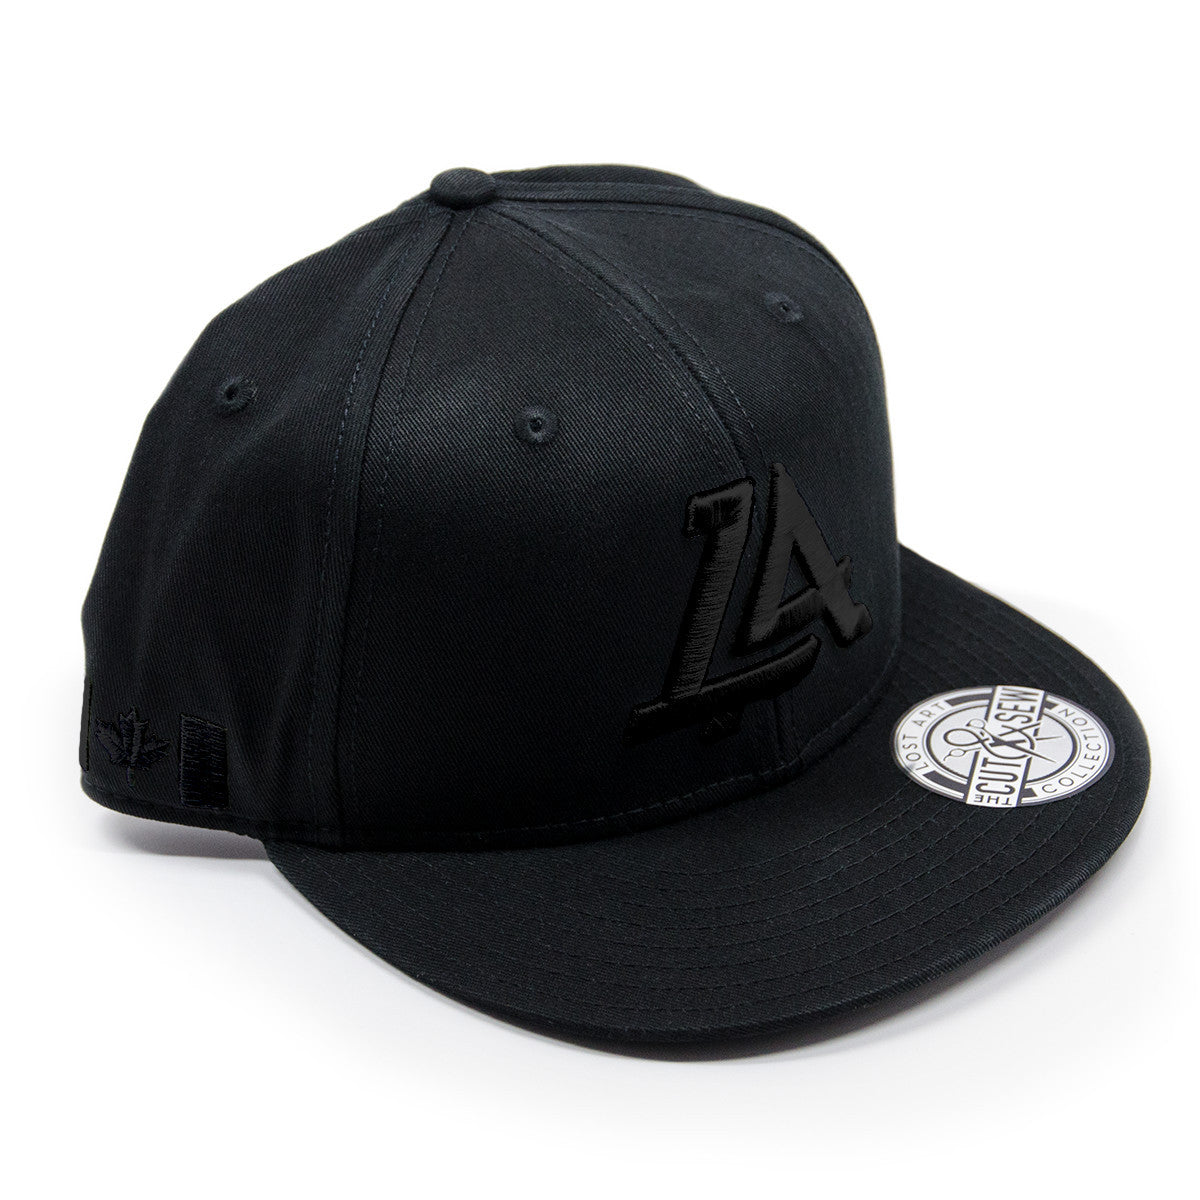 Lost Art Canada - black logo black snapback hat front view